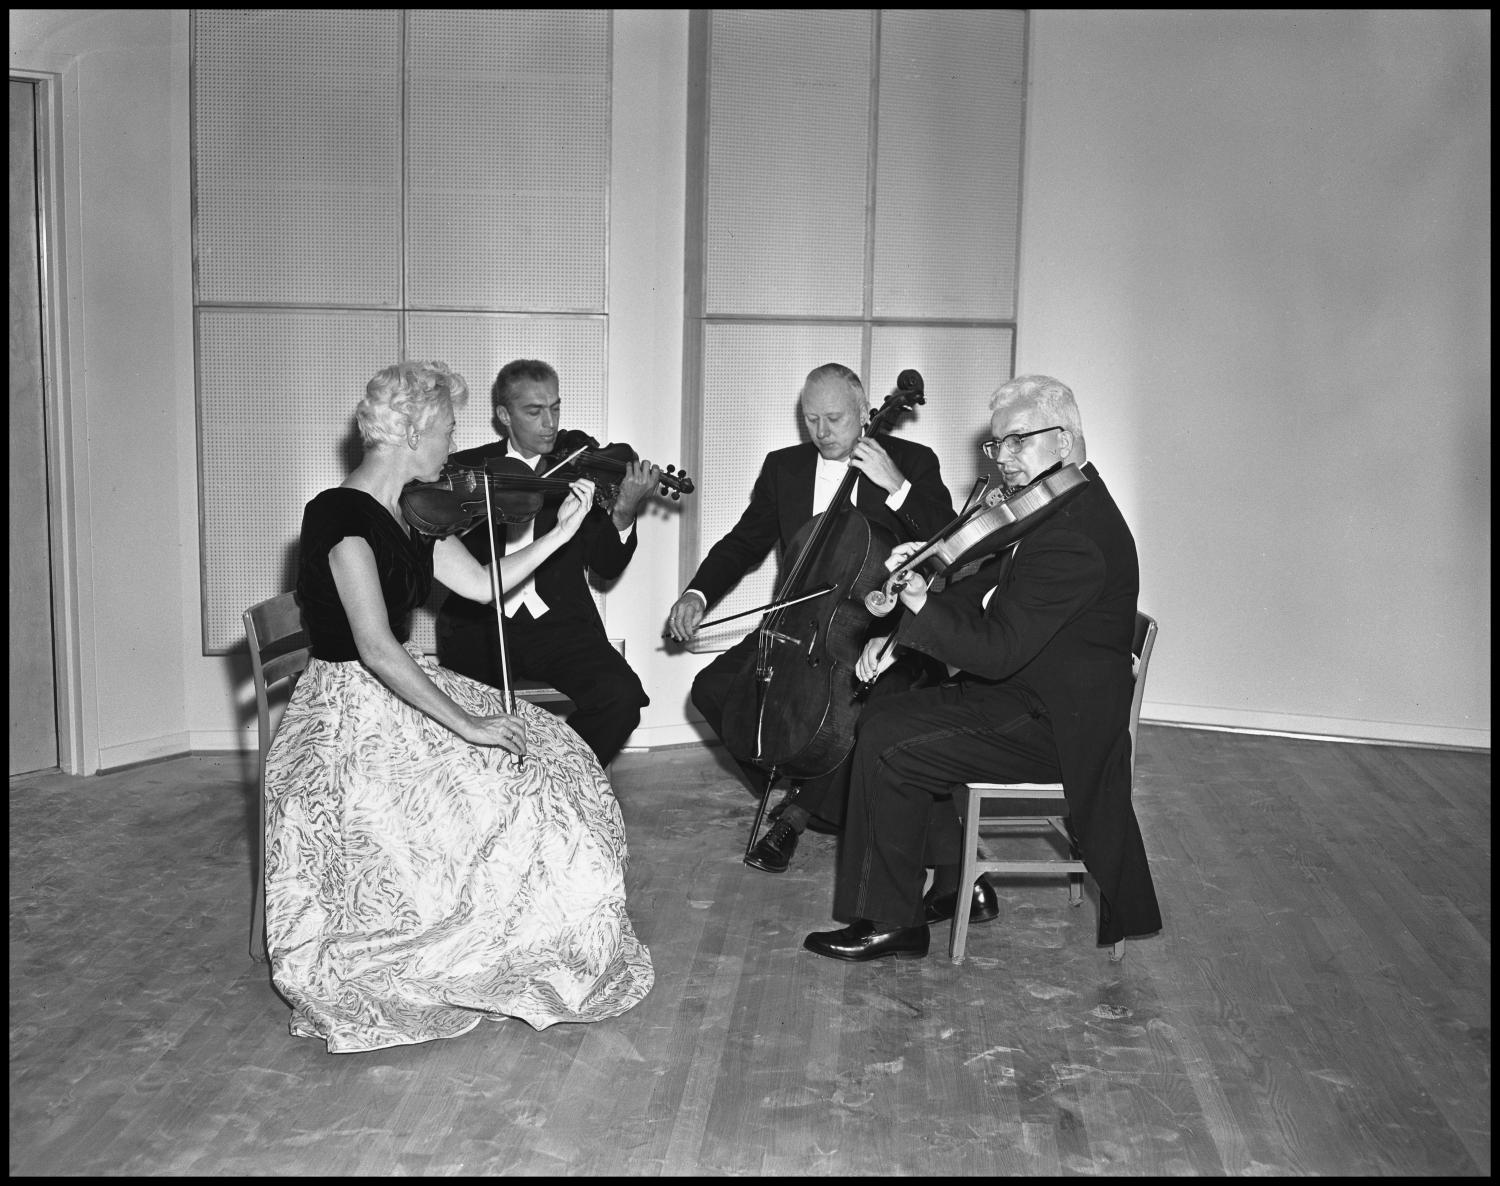 [String Quartet], Photograph of a string quartet. The musicians have been identified as NTSU School of Music faculty members Marjorie Fulton, Russell Miller, Alan Richardson, and George Morey. Aside from the musicians, the room appears empty.,